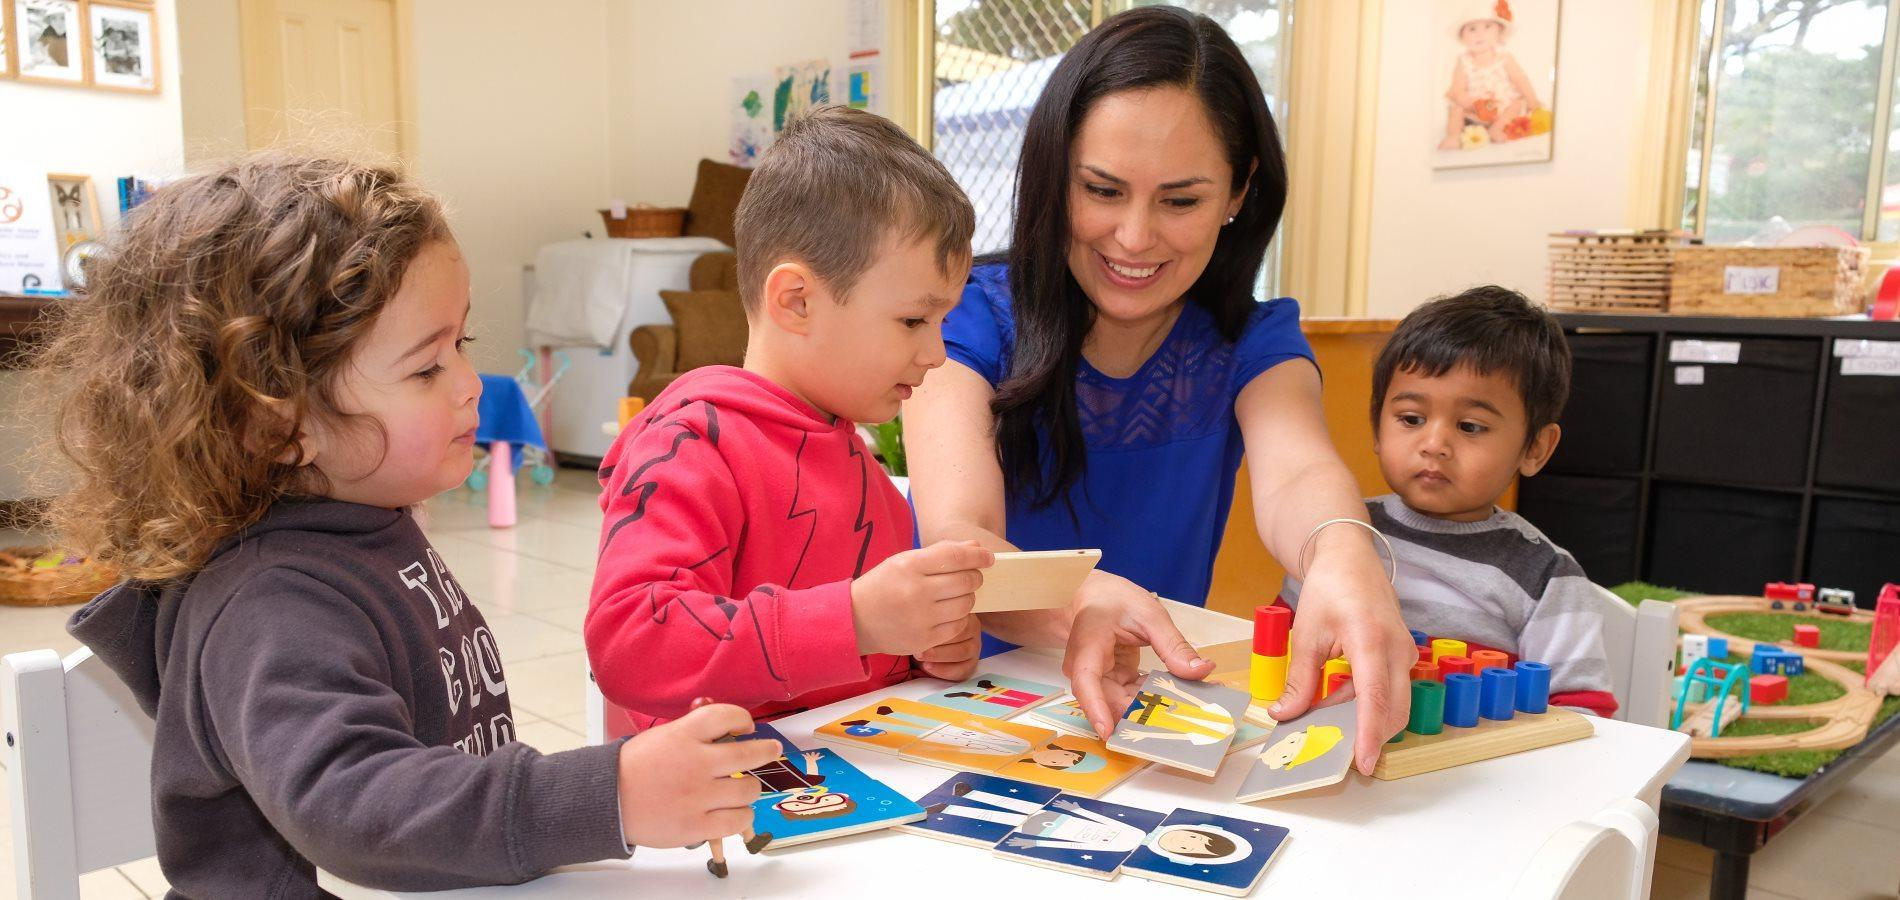 Family Day Care - The Infants' Home